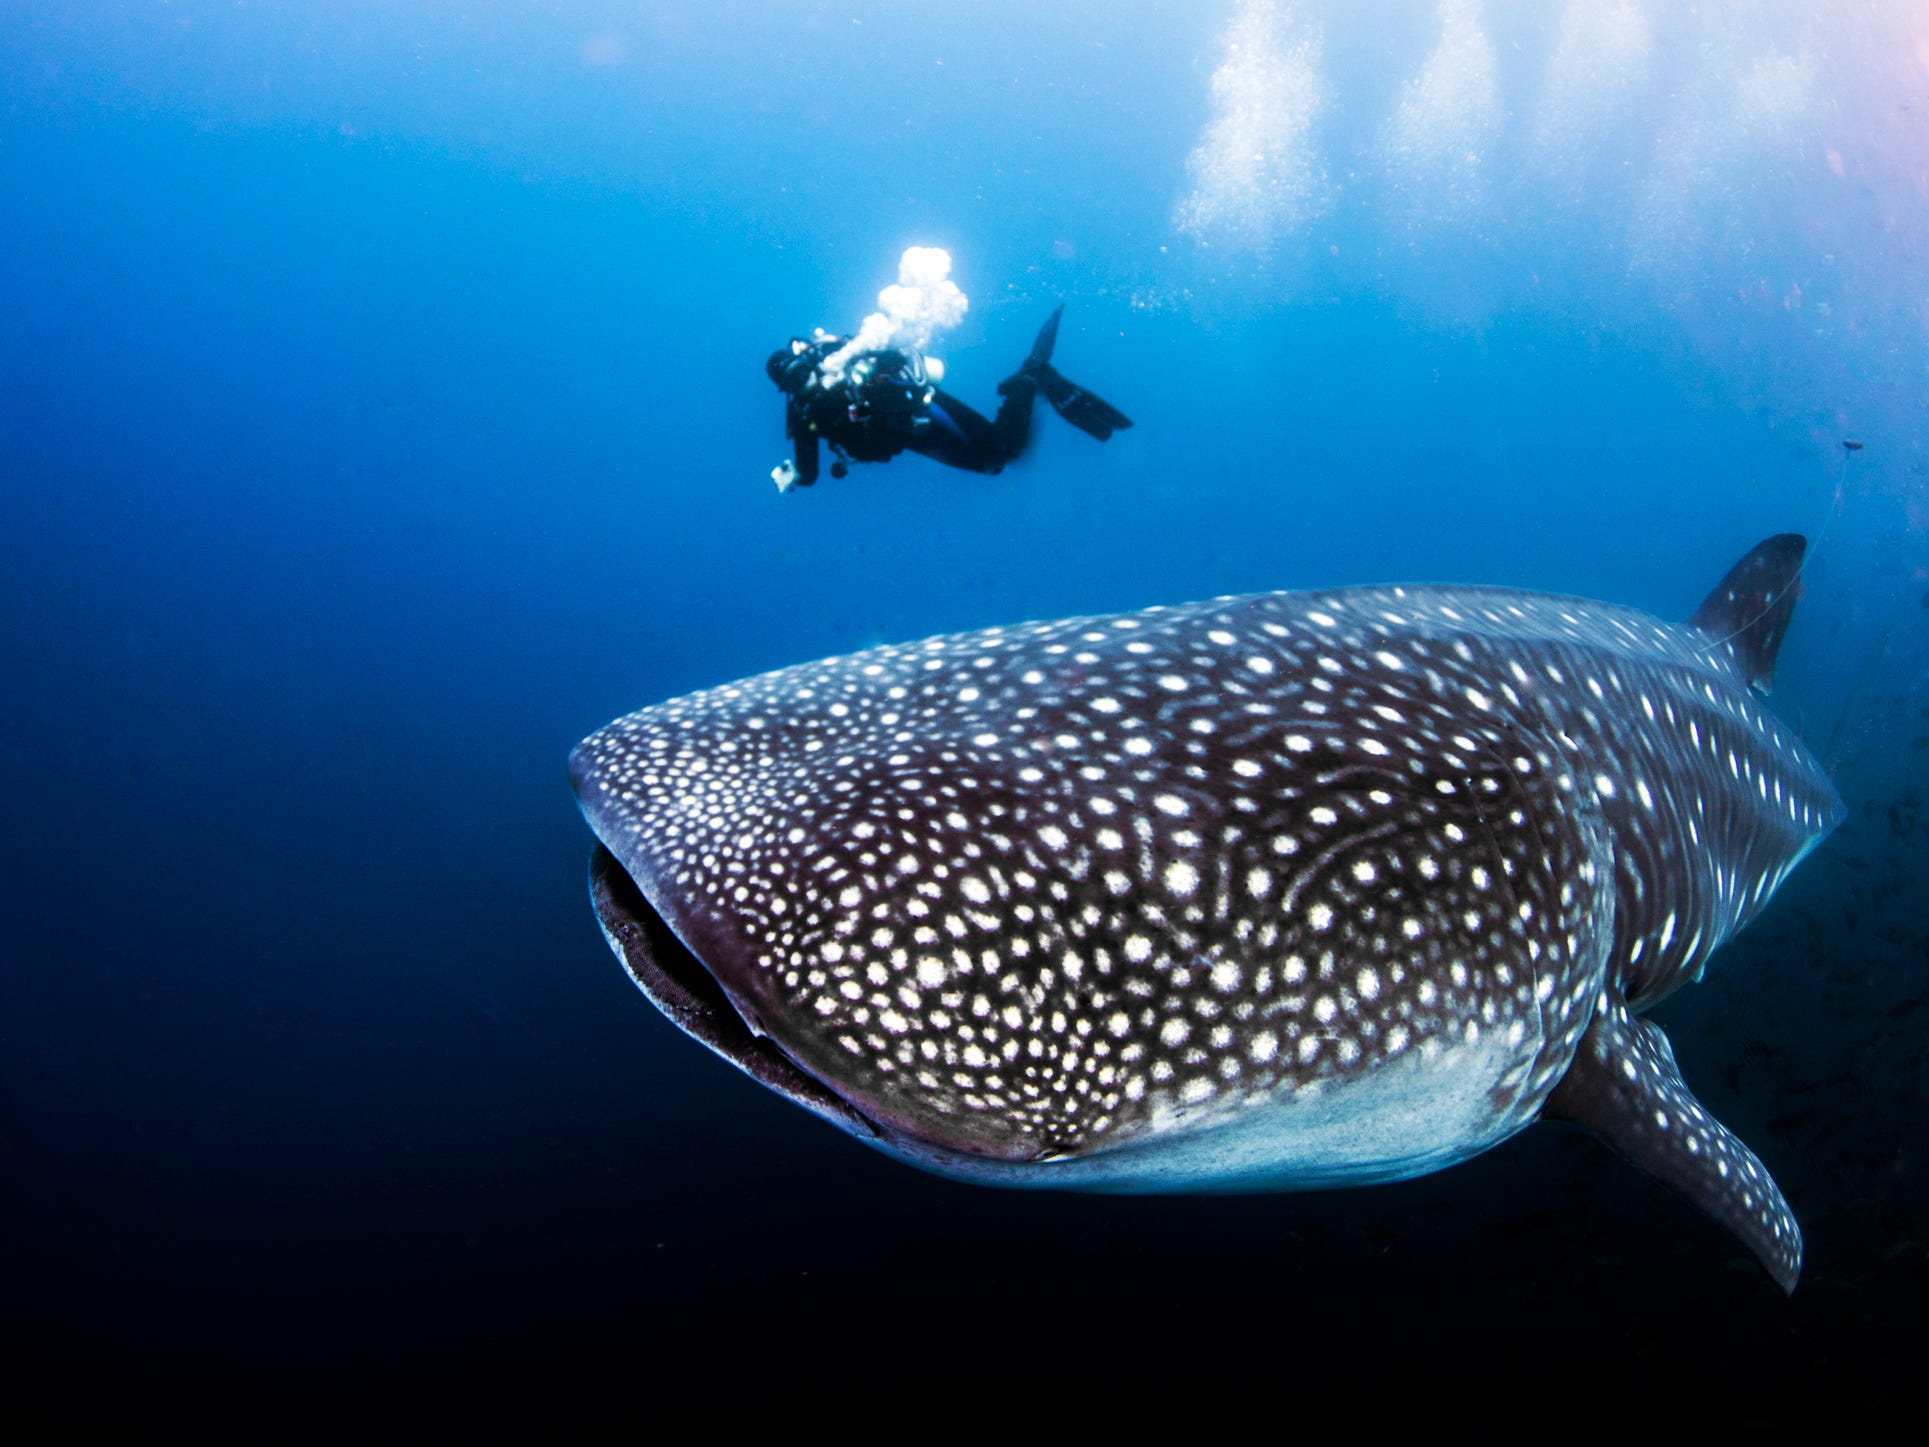 A whale shark in the Galapagos Islands, Ecuador.